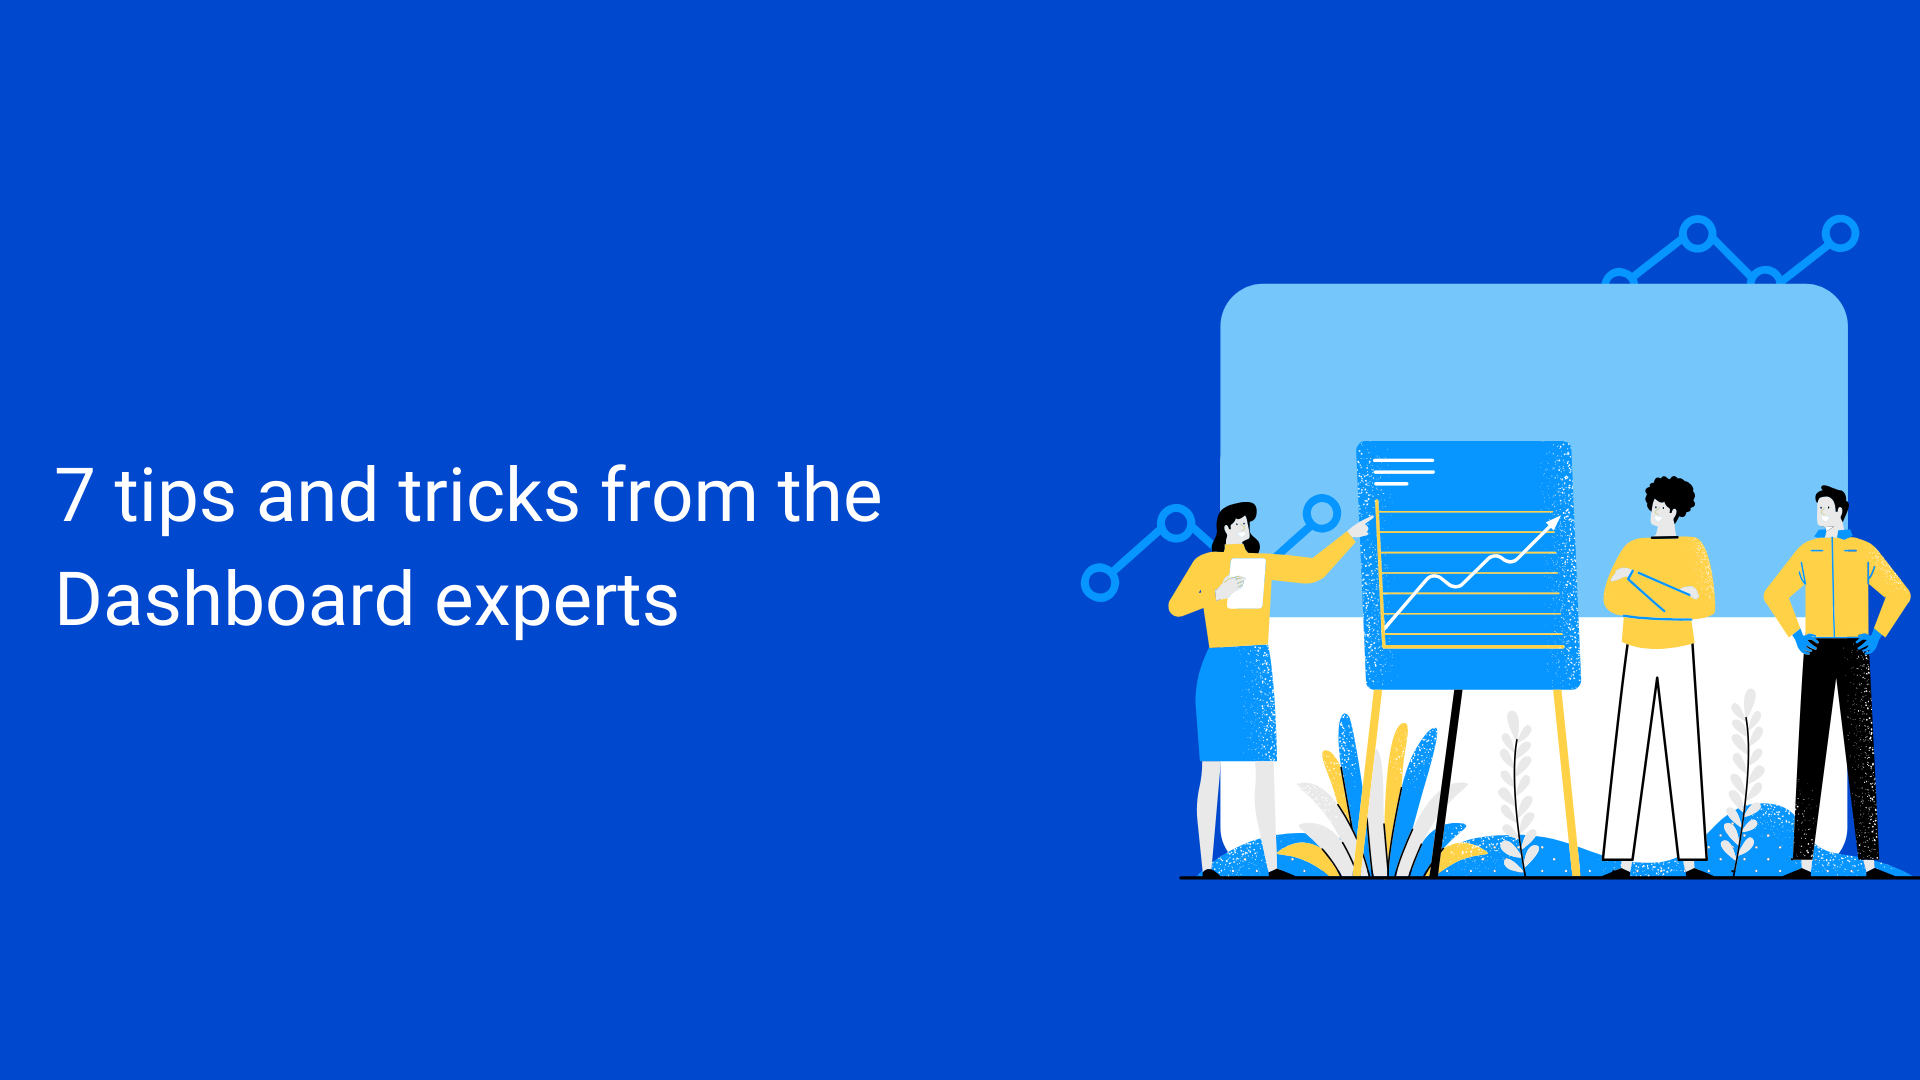 7 tips and tricks from the Dashboard experts